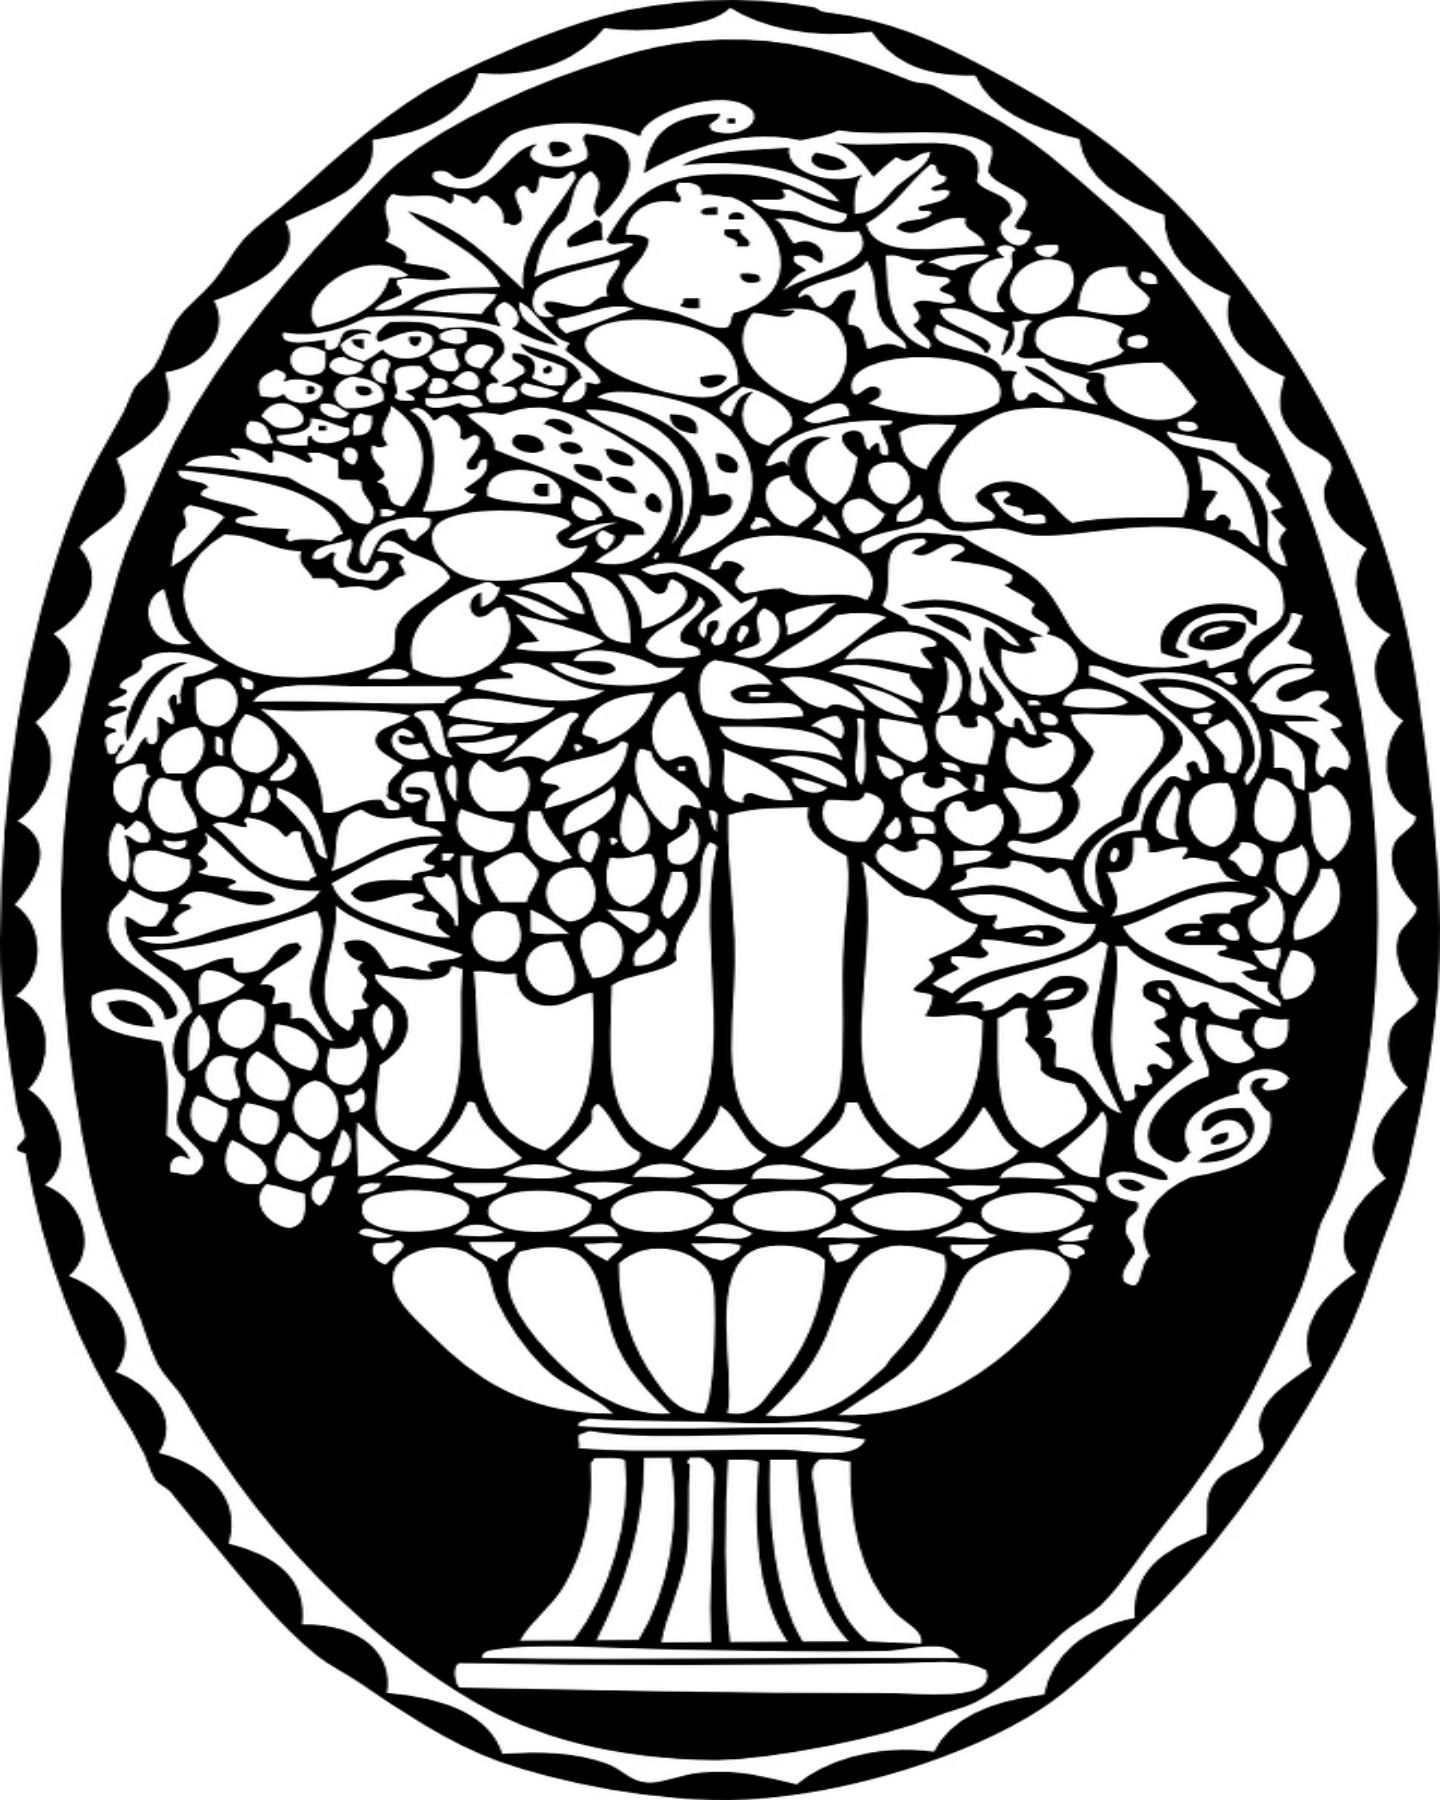 Fruit bowl coloring pictures - Free Printable Fruit Bowl Coloring Page